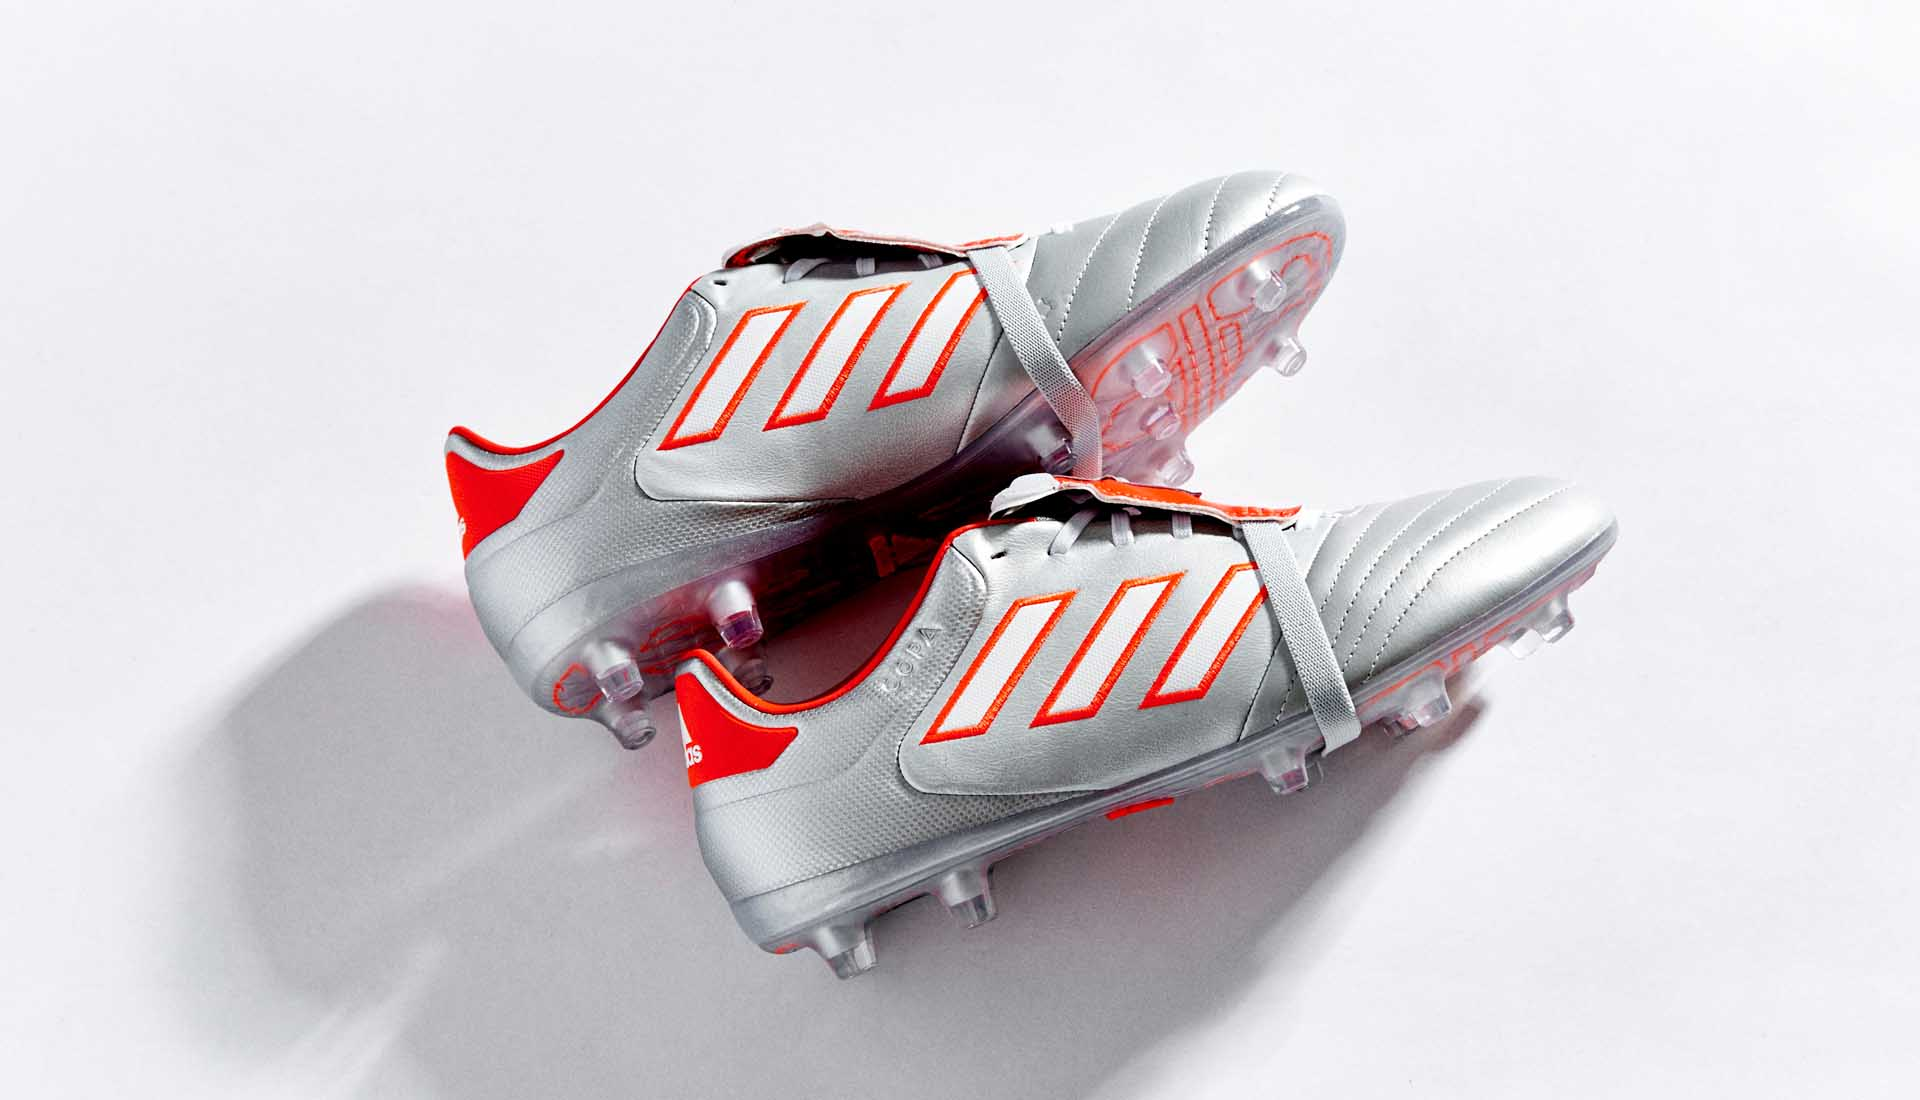 check out c465c 4a030 gloro-red-silver-4-min.jpg. The key thing the adidas Copa Gloro 17 ...